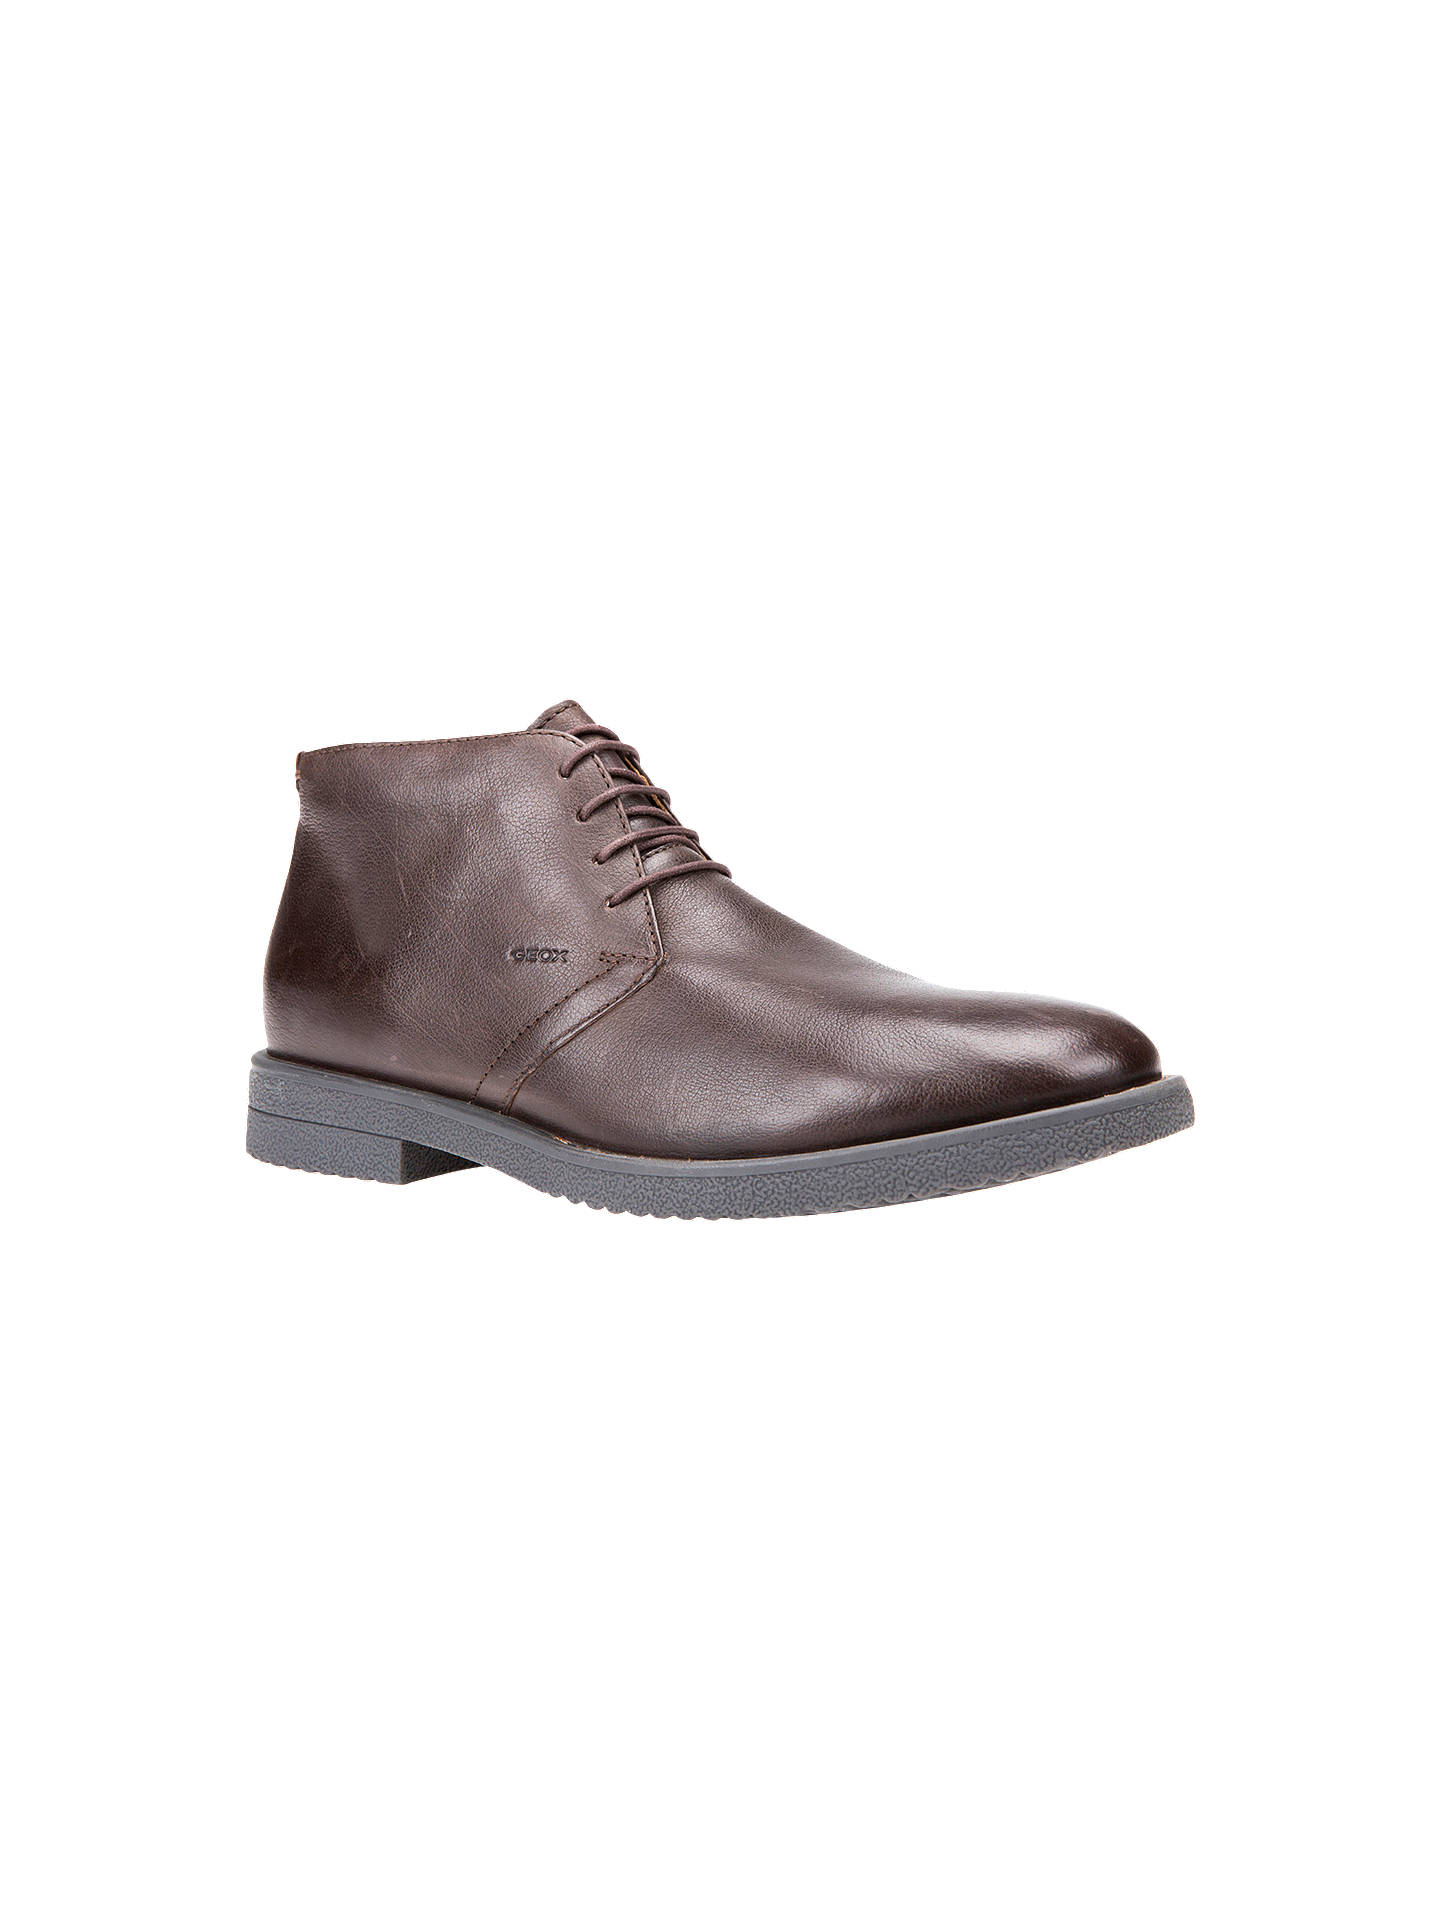 Geox Brandled Leather Desert Boots at